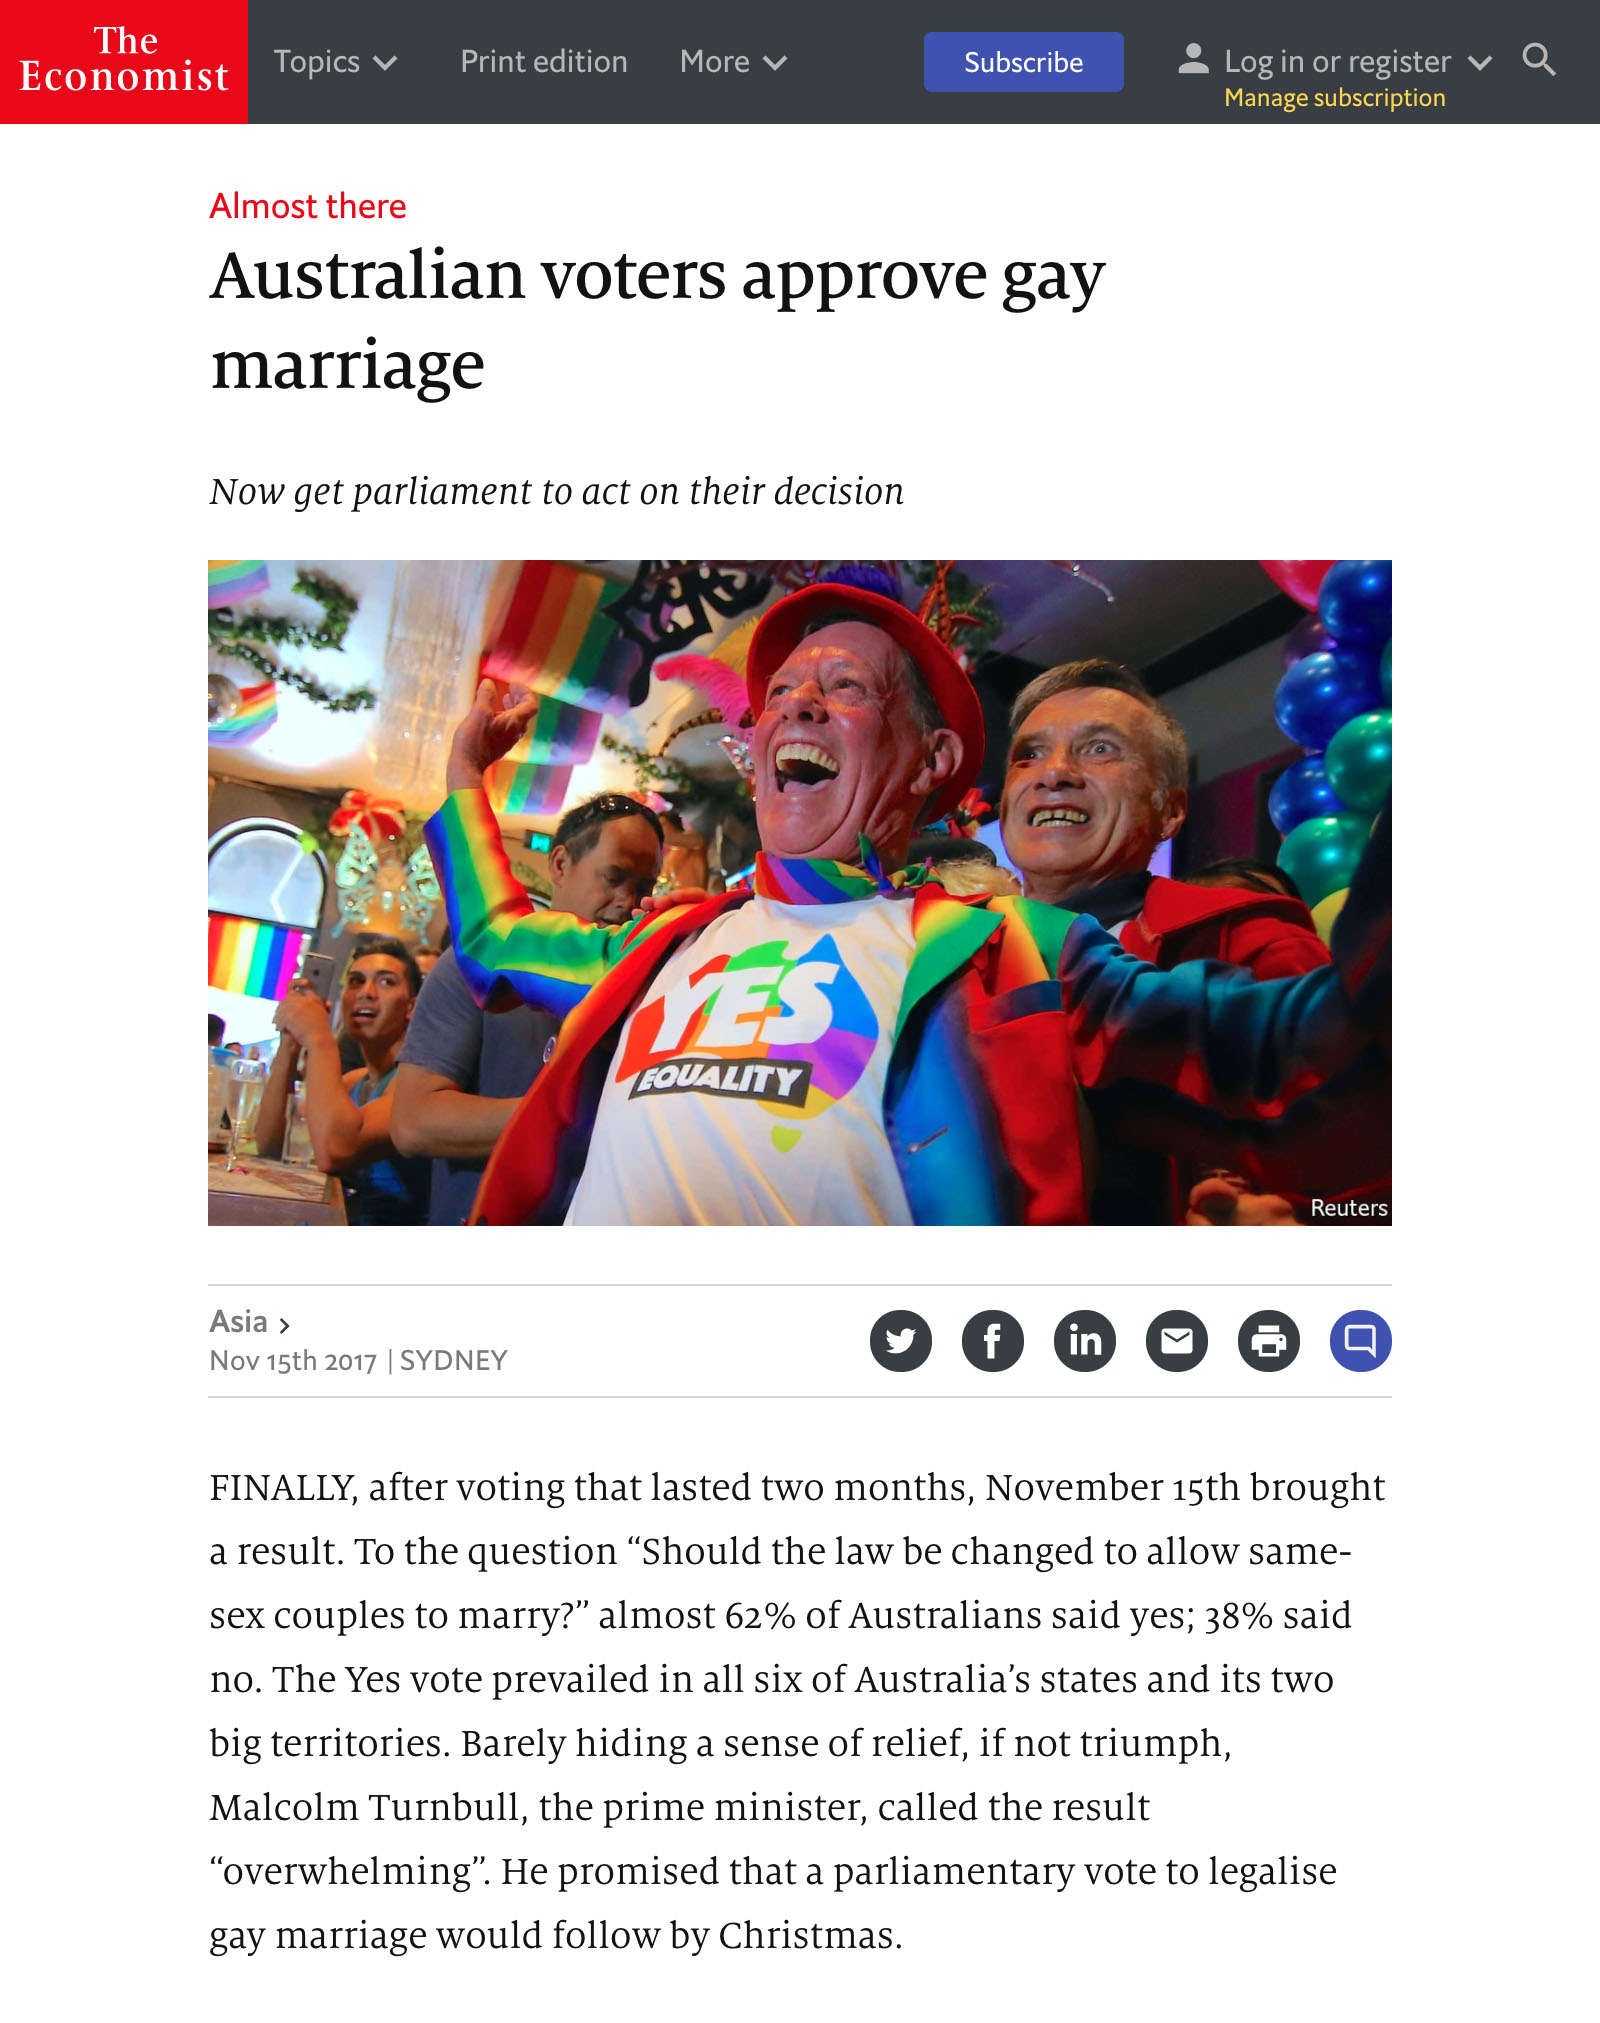 www.economist.com_news_asia_21731368-now-get-parliament-act-their-decision-australian-voters-approve-gay-marriage.jpg